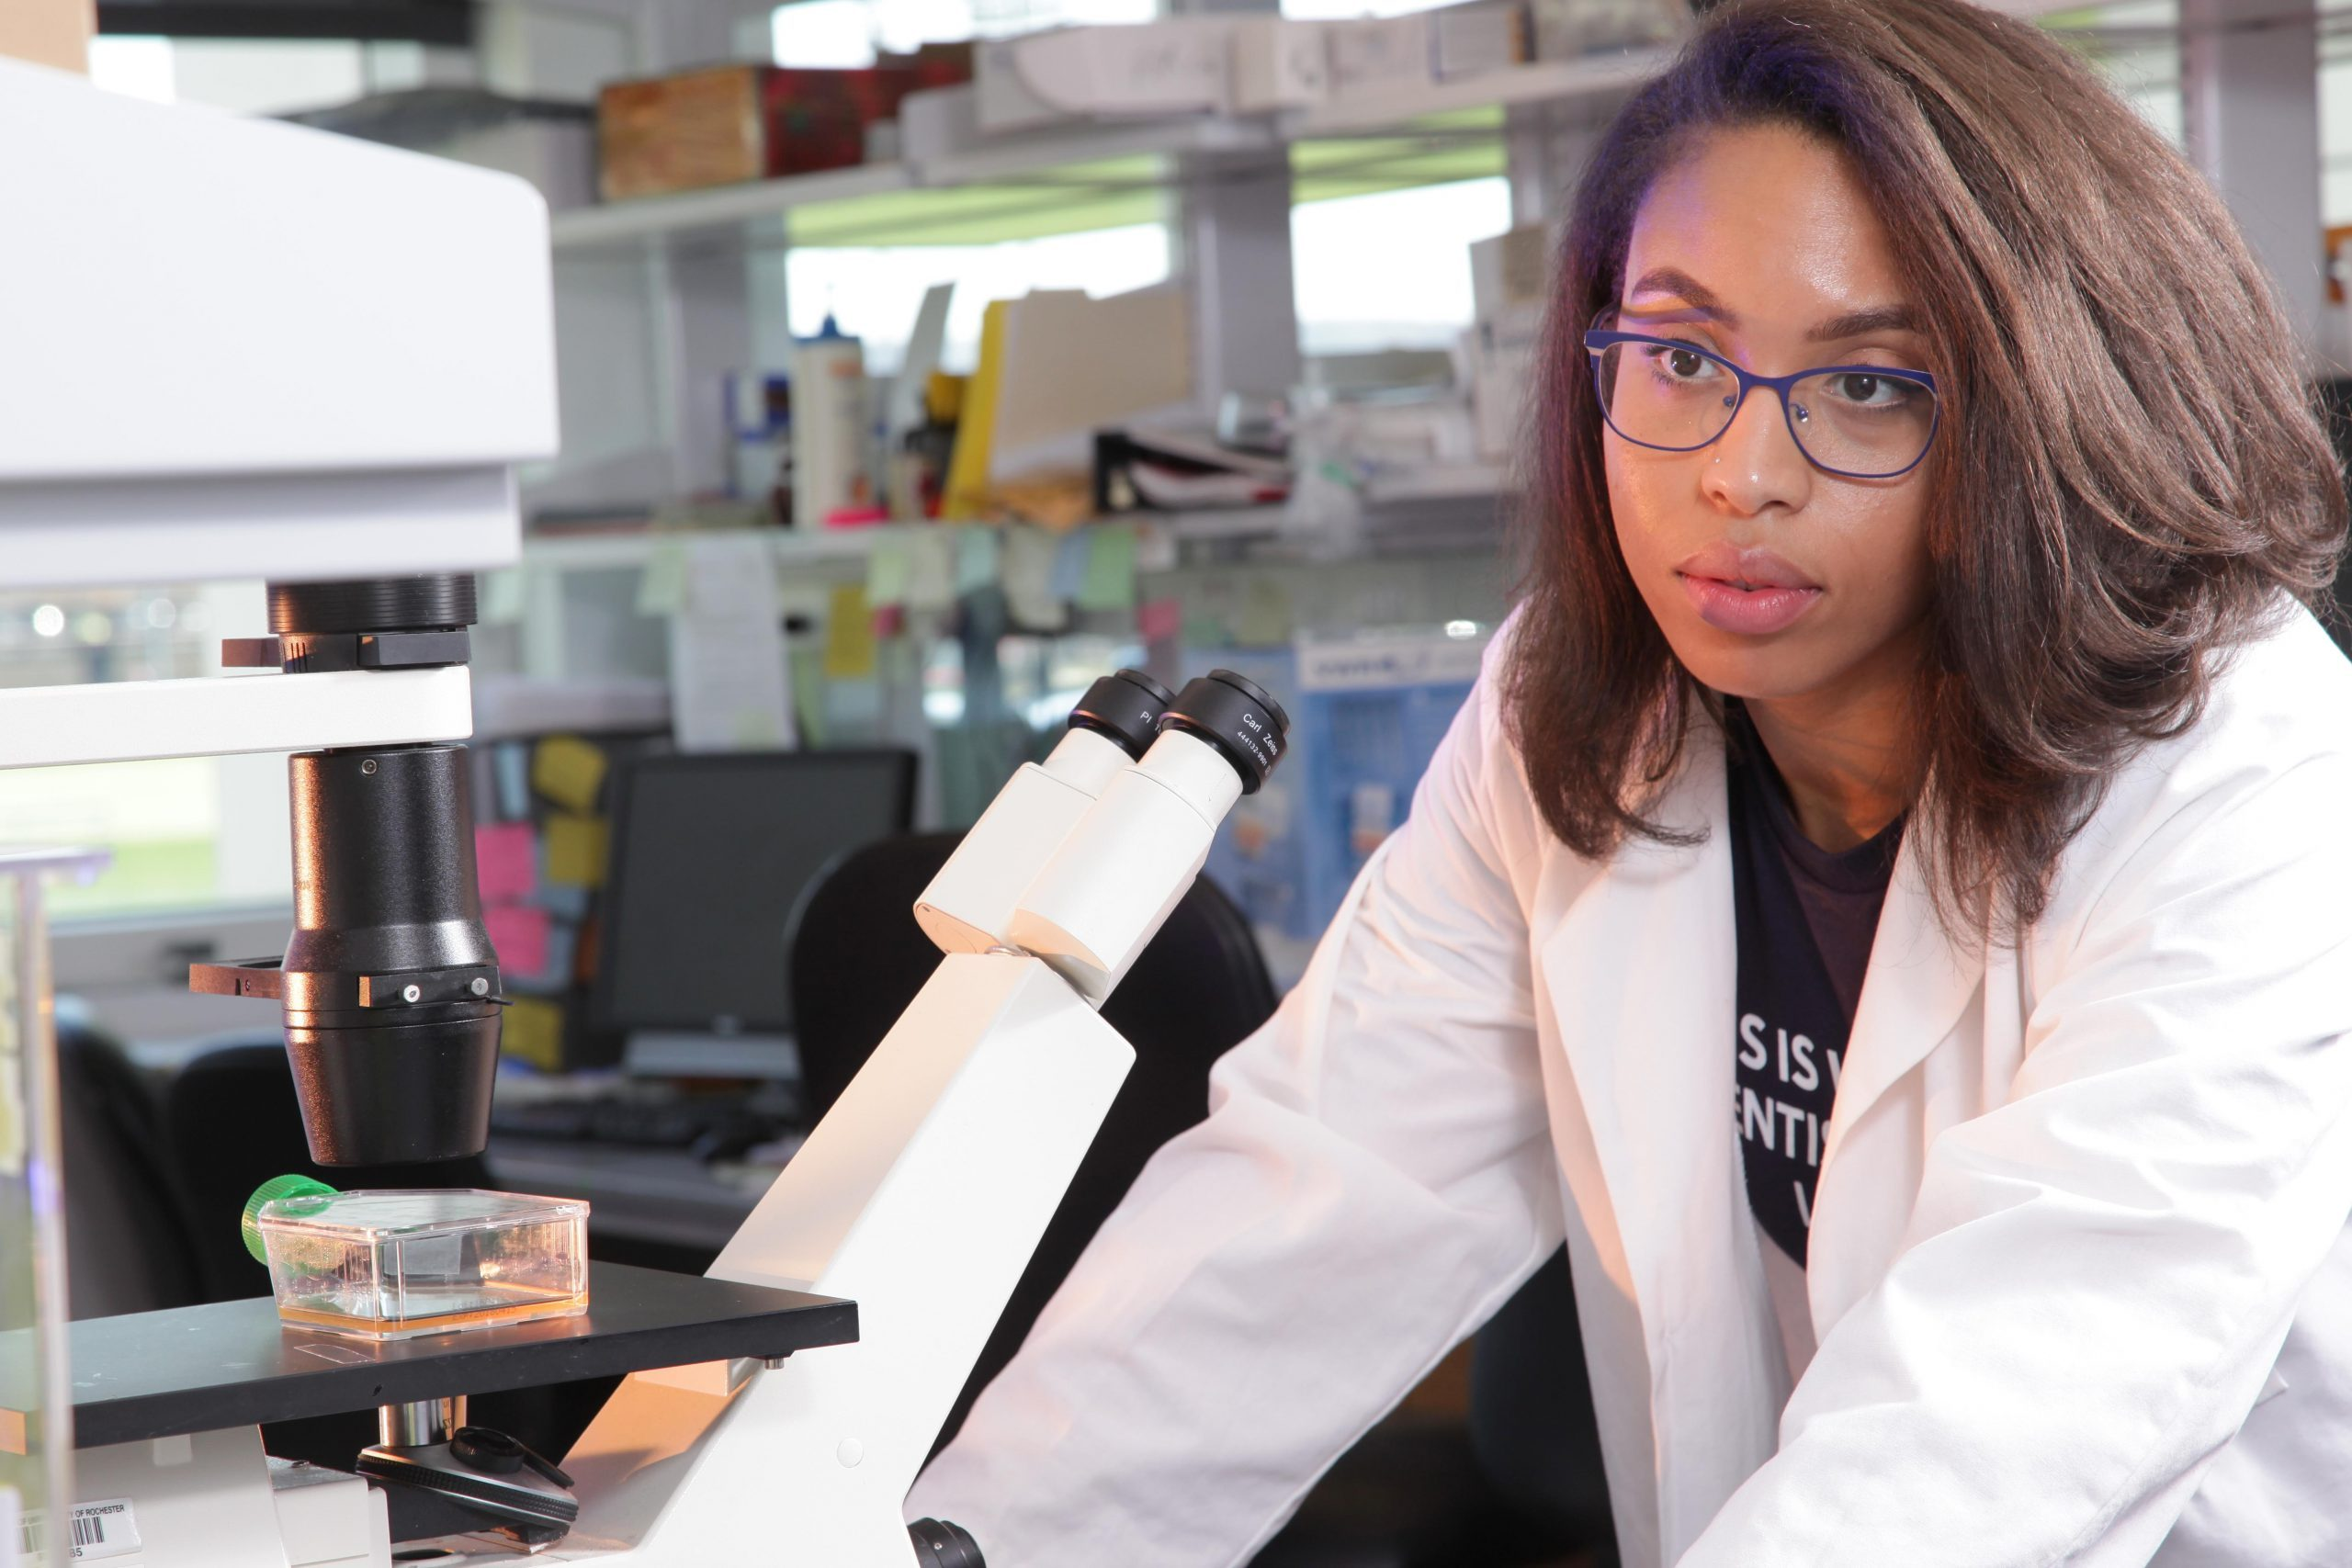 """This is What a Scientist Looks Like"": How Korie Grayson balances her STEM research with her interests outside of STEM"